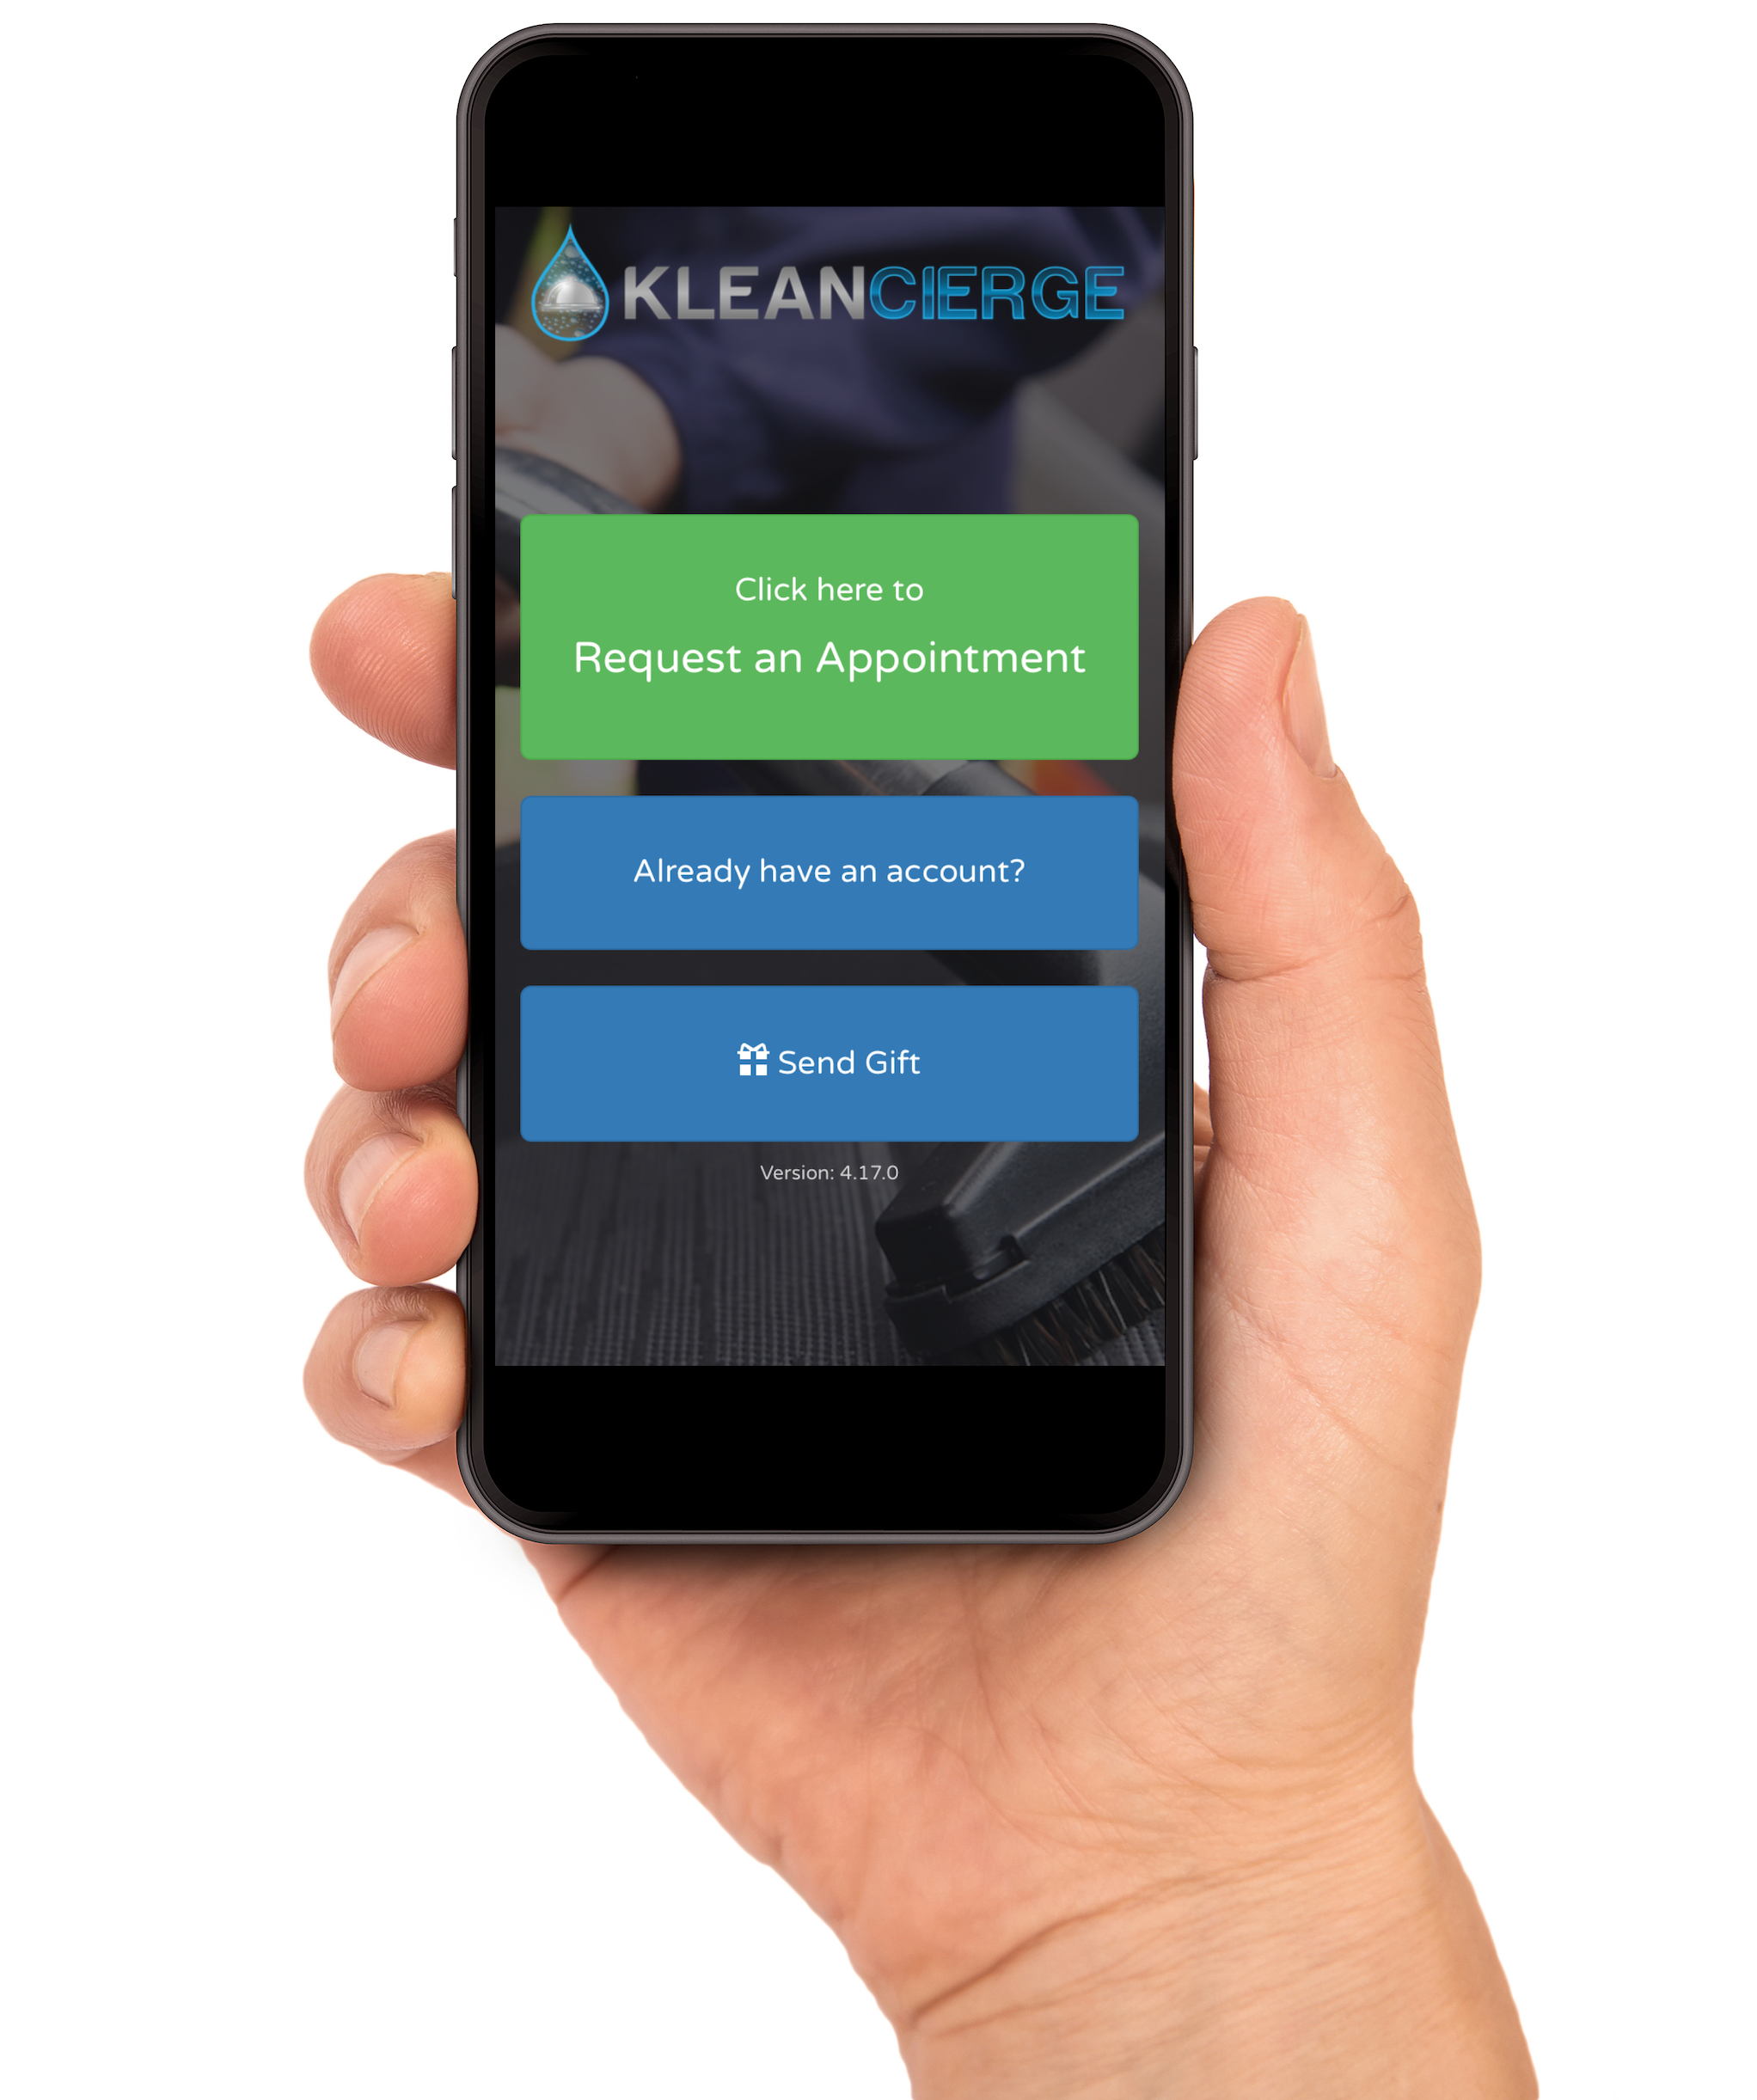 Kleancierge is a mobile app that connect vehicle owners